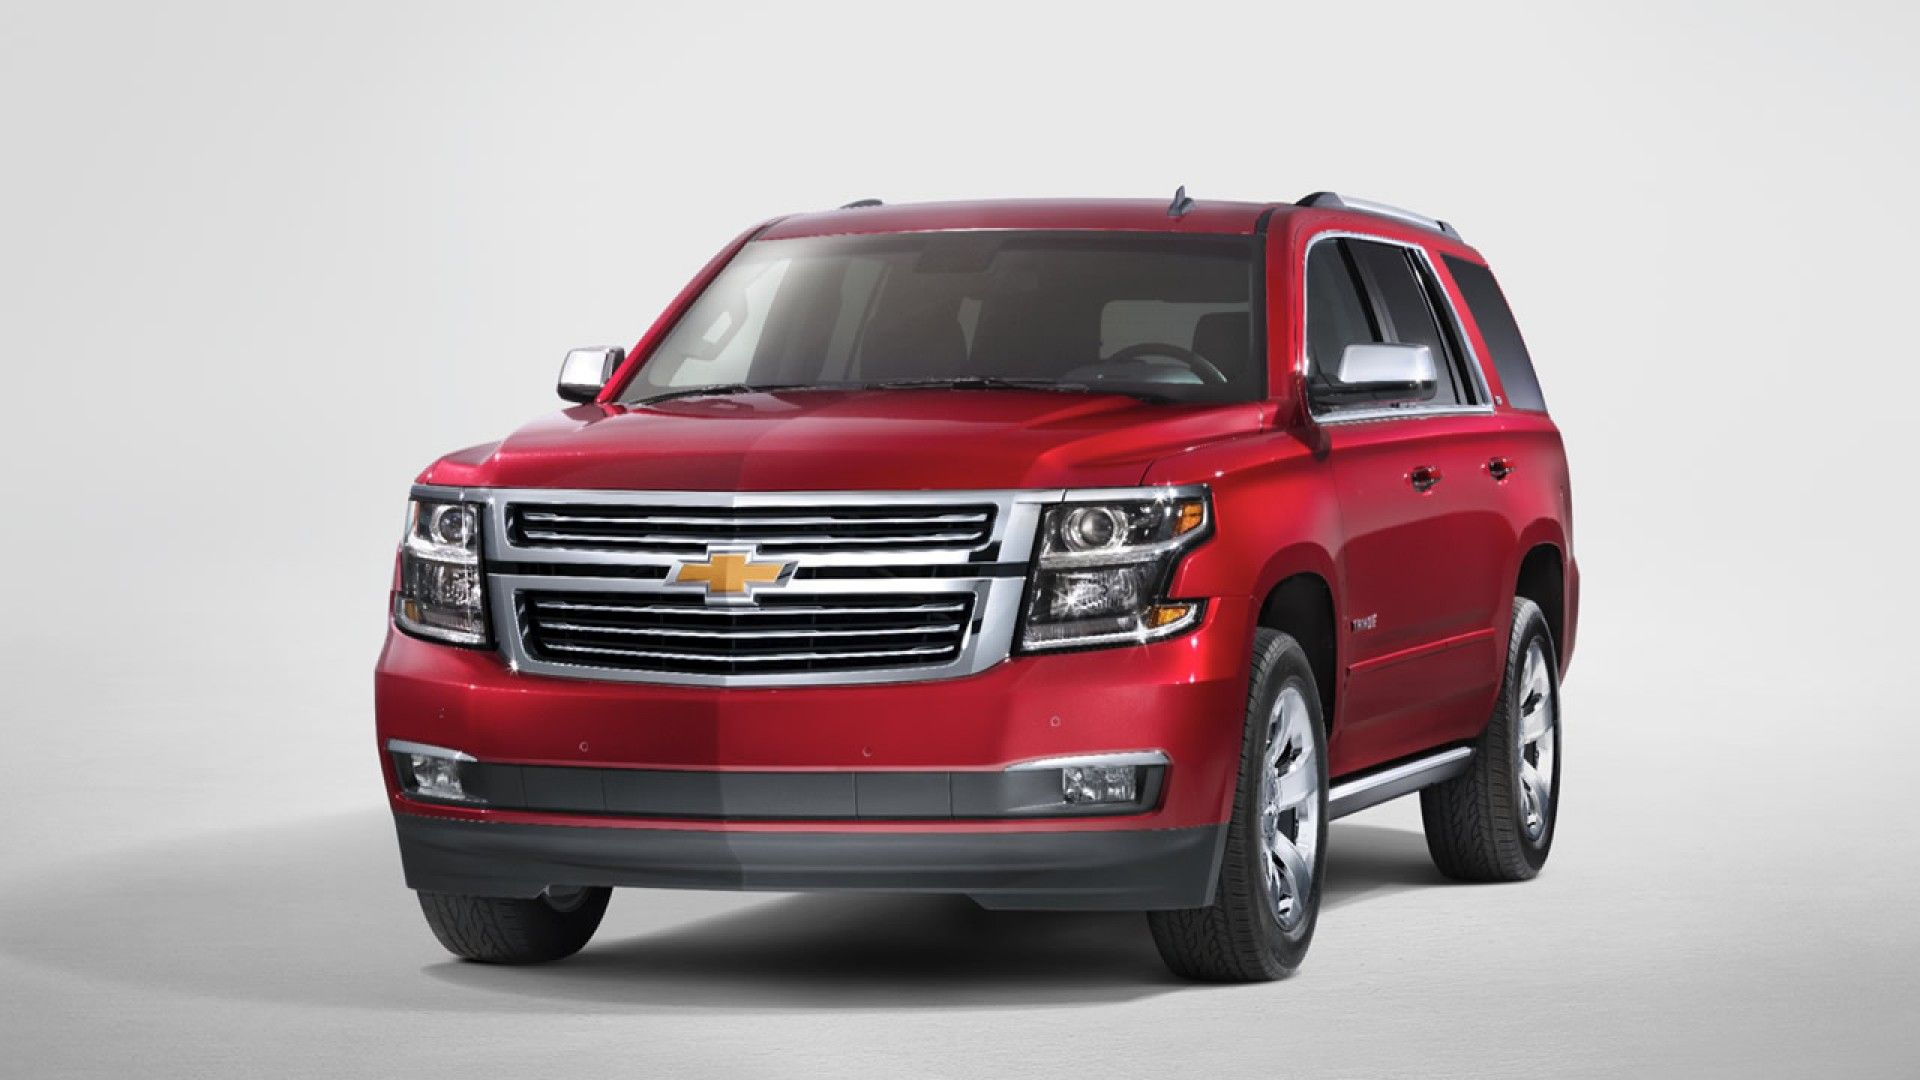 33 best Chevy SUV s images on Pinterest